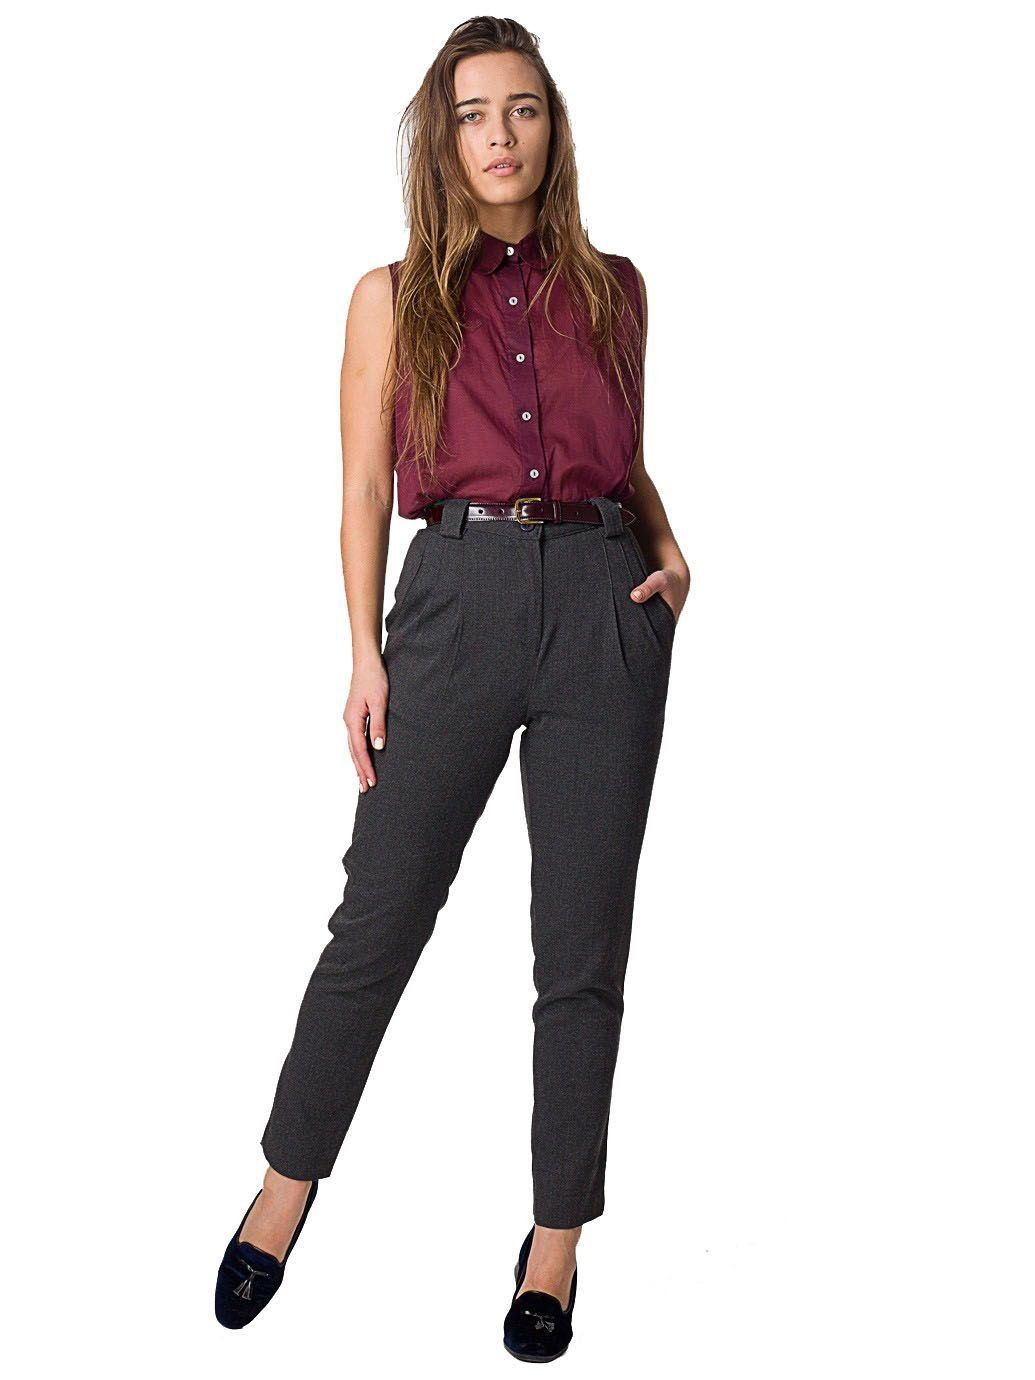 f5bcfdc2aa9 American Apparel Calvary Twill High-Waist Pleated Pant - Dark Charcoal   L  at Amazon Women s Clothing store